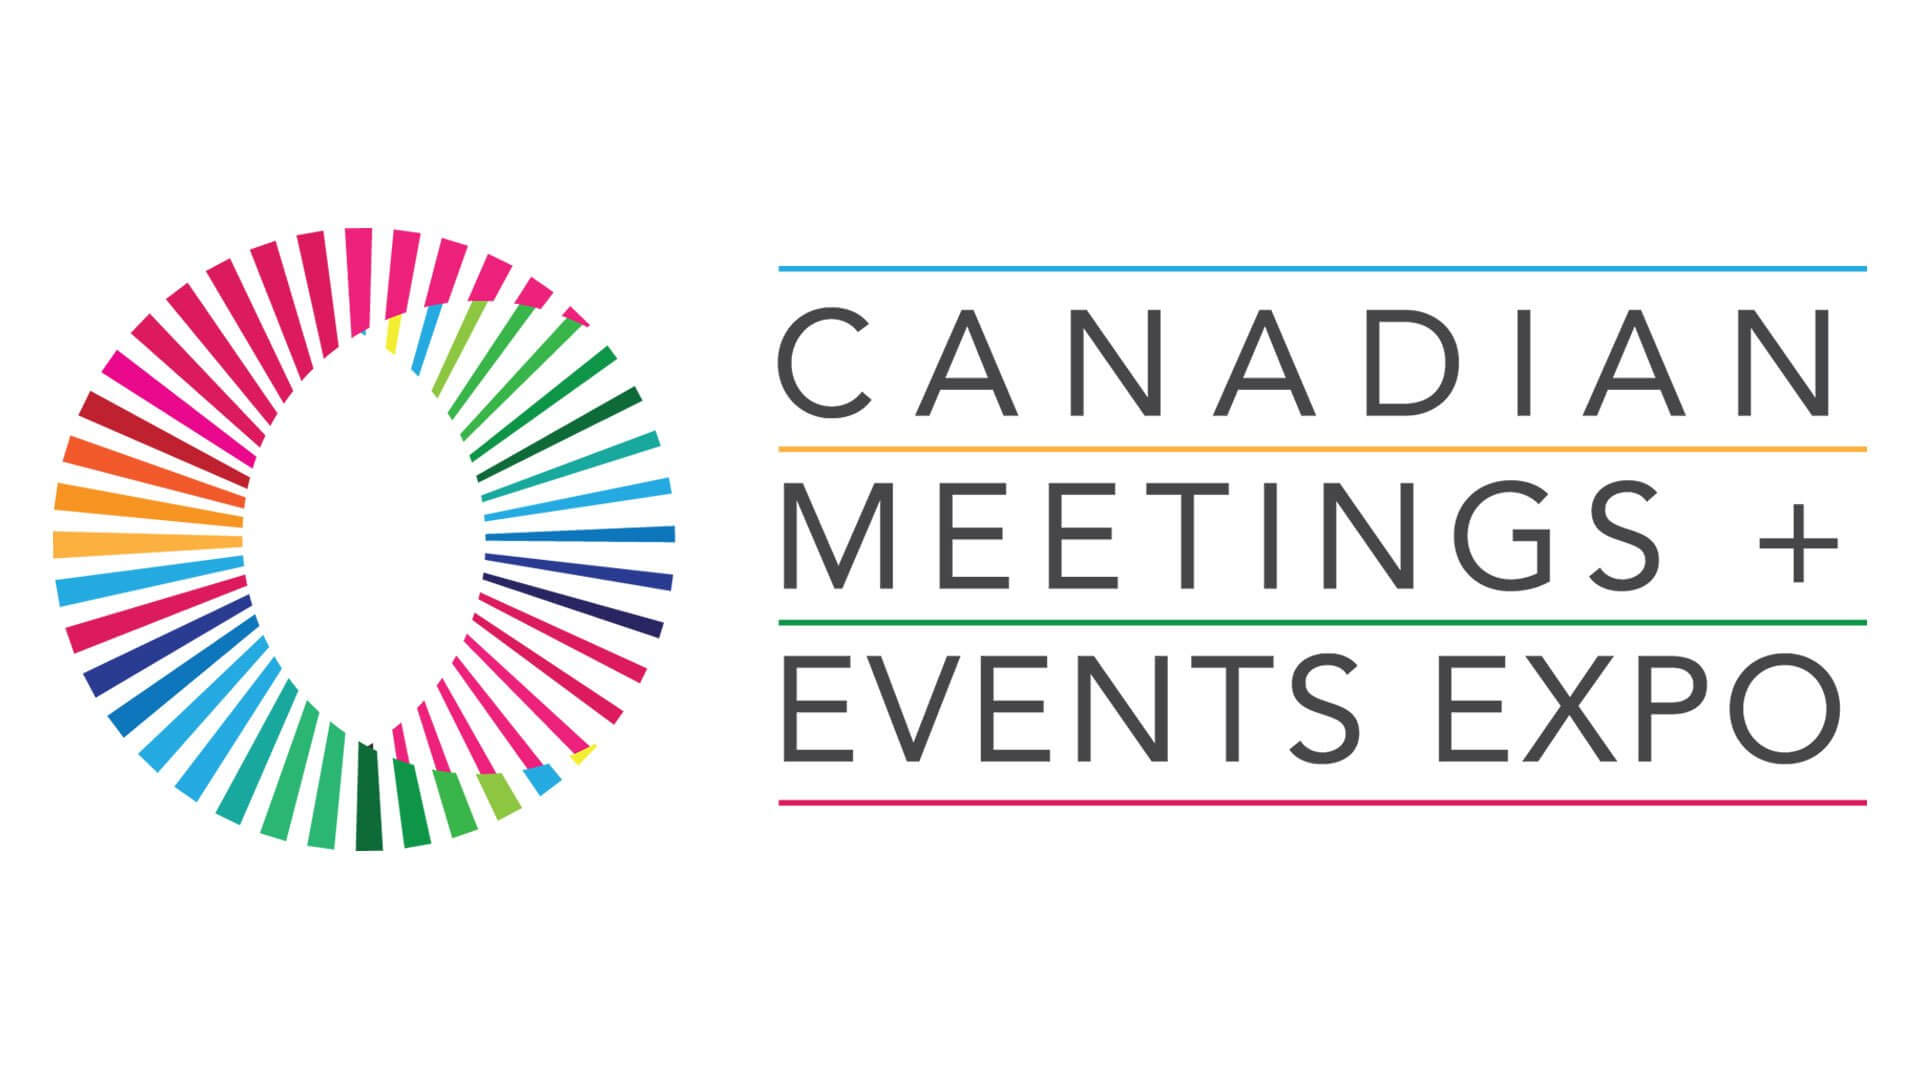 Canadian Meetings & Events Expo (CMEE)